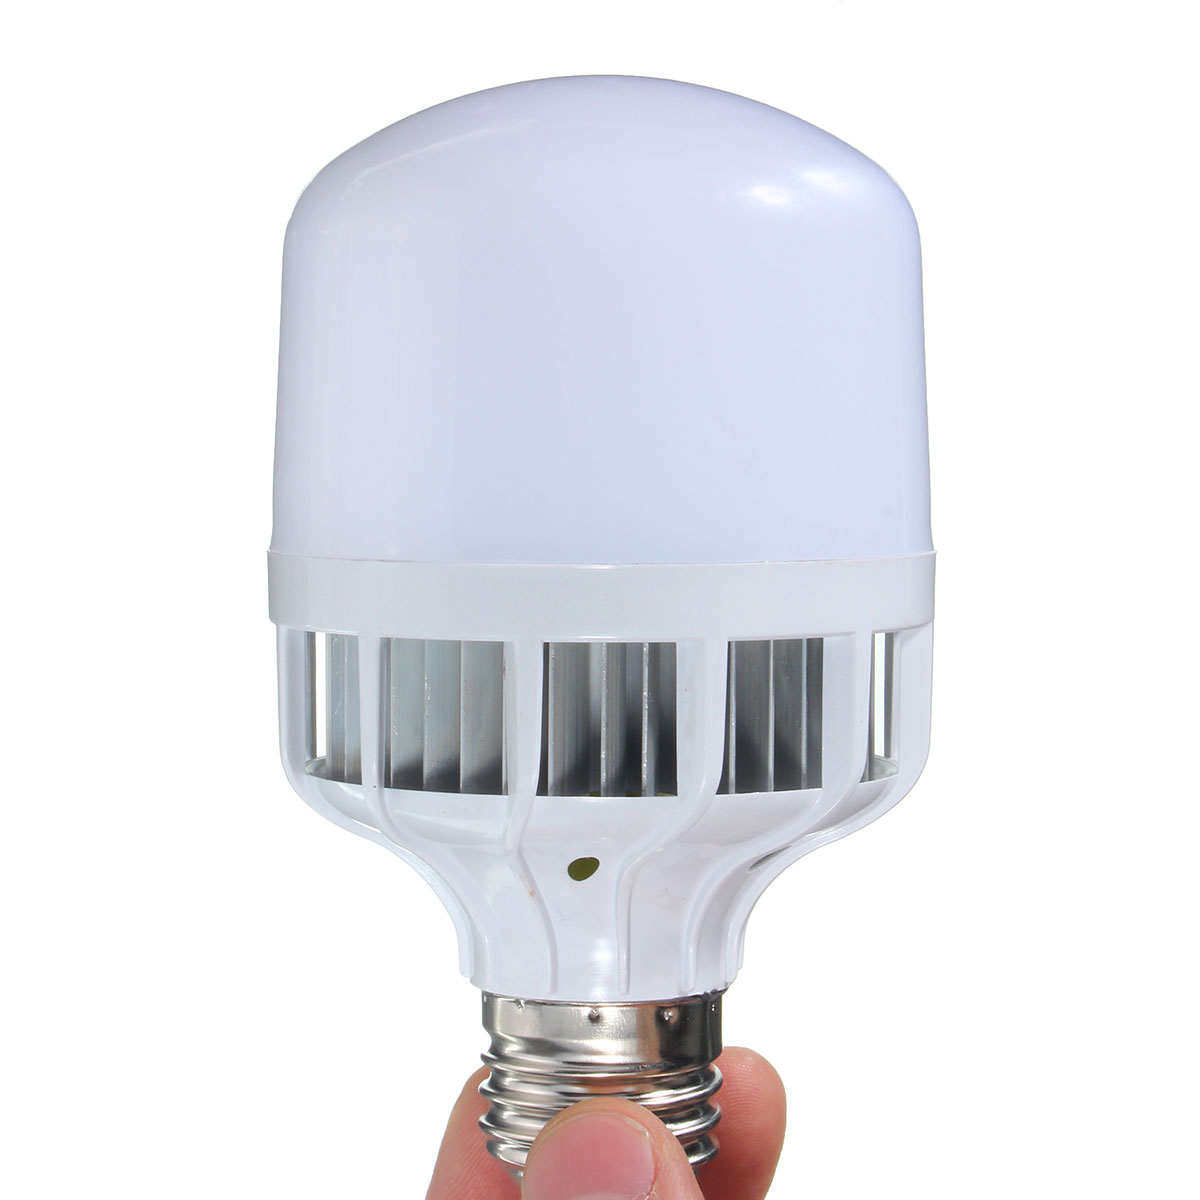 E27 B22 10W 440LM 5730 SMD LED Light Lamp Bulb White Bright for Home Bedroom Non-Dimmable 220V